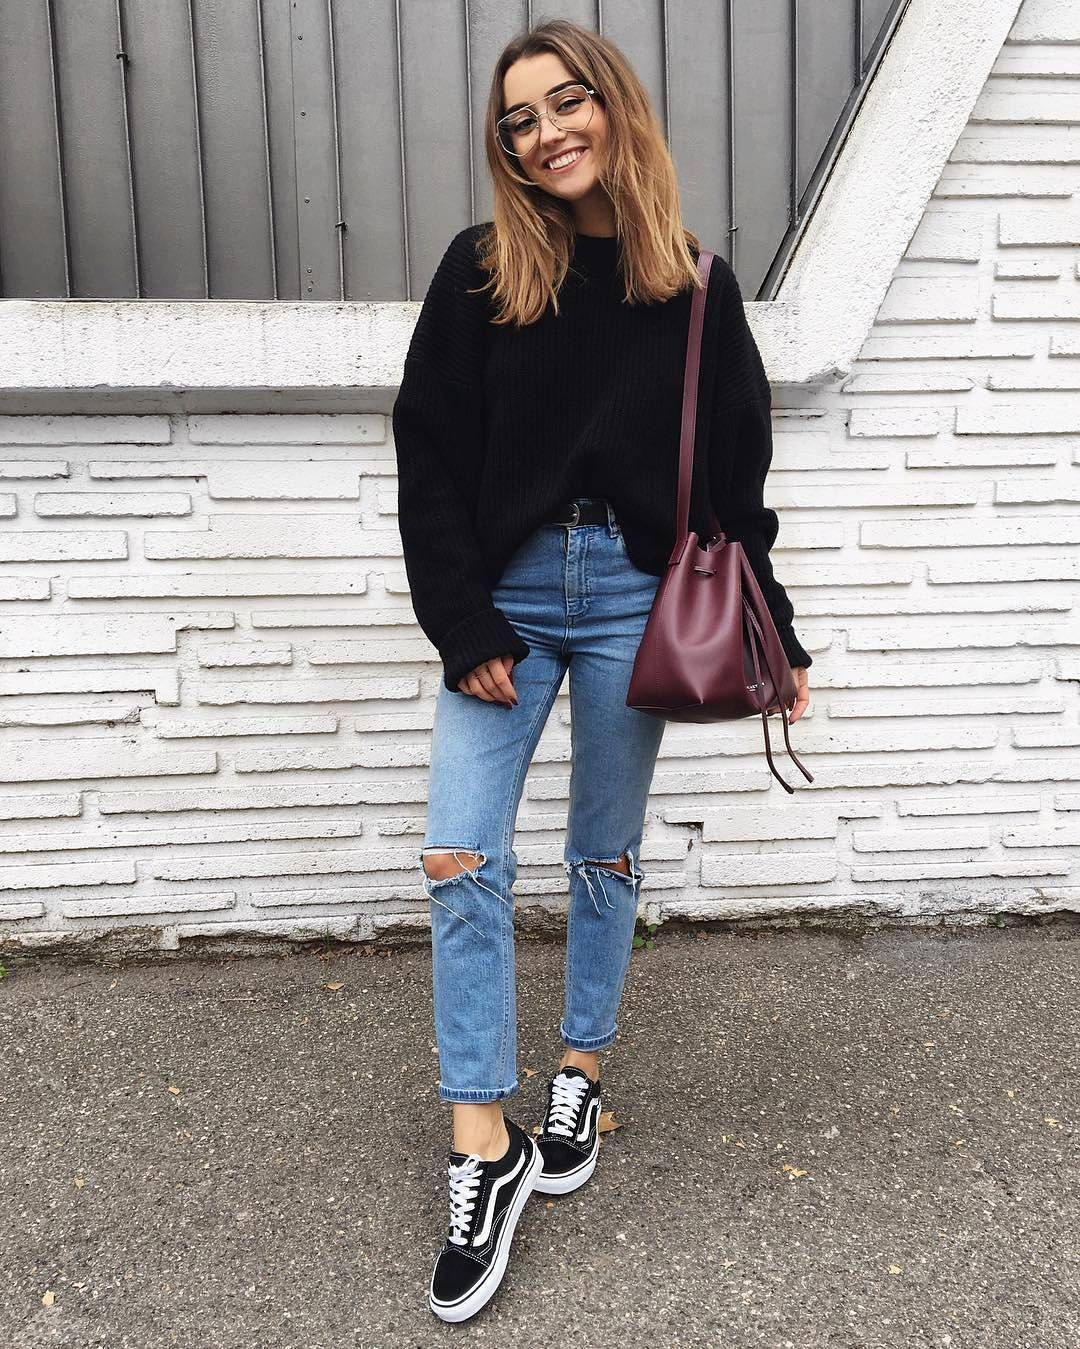 Seven Fashion Tips for Long Legs and a Short Torso